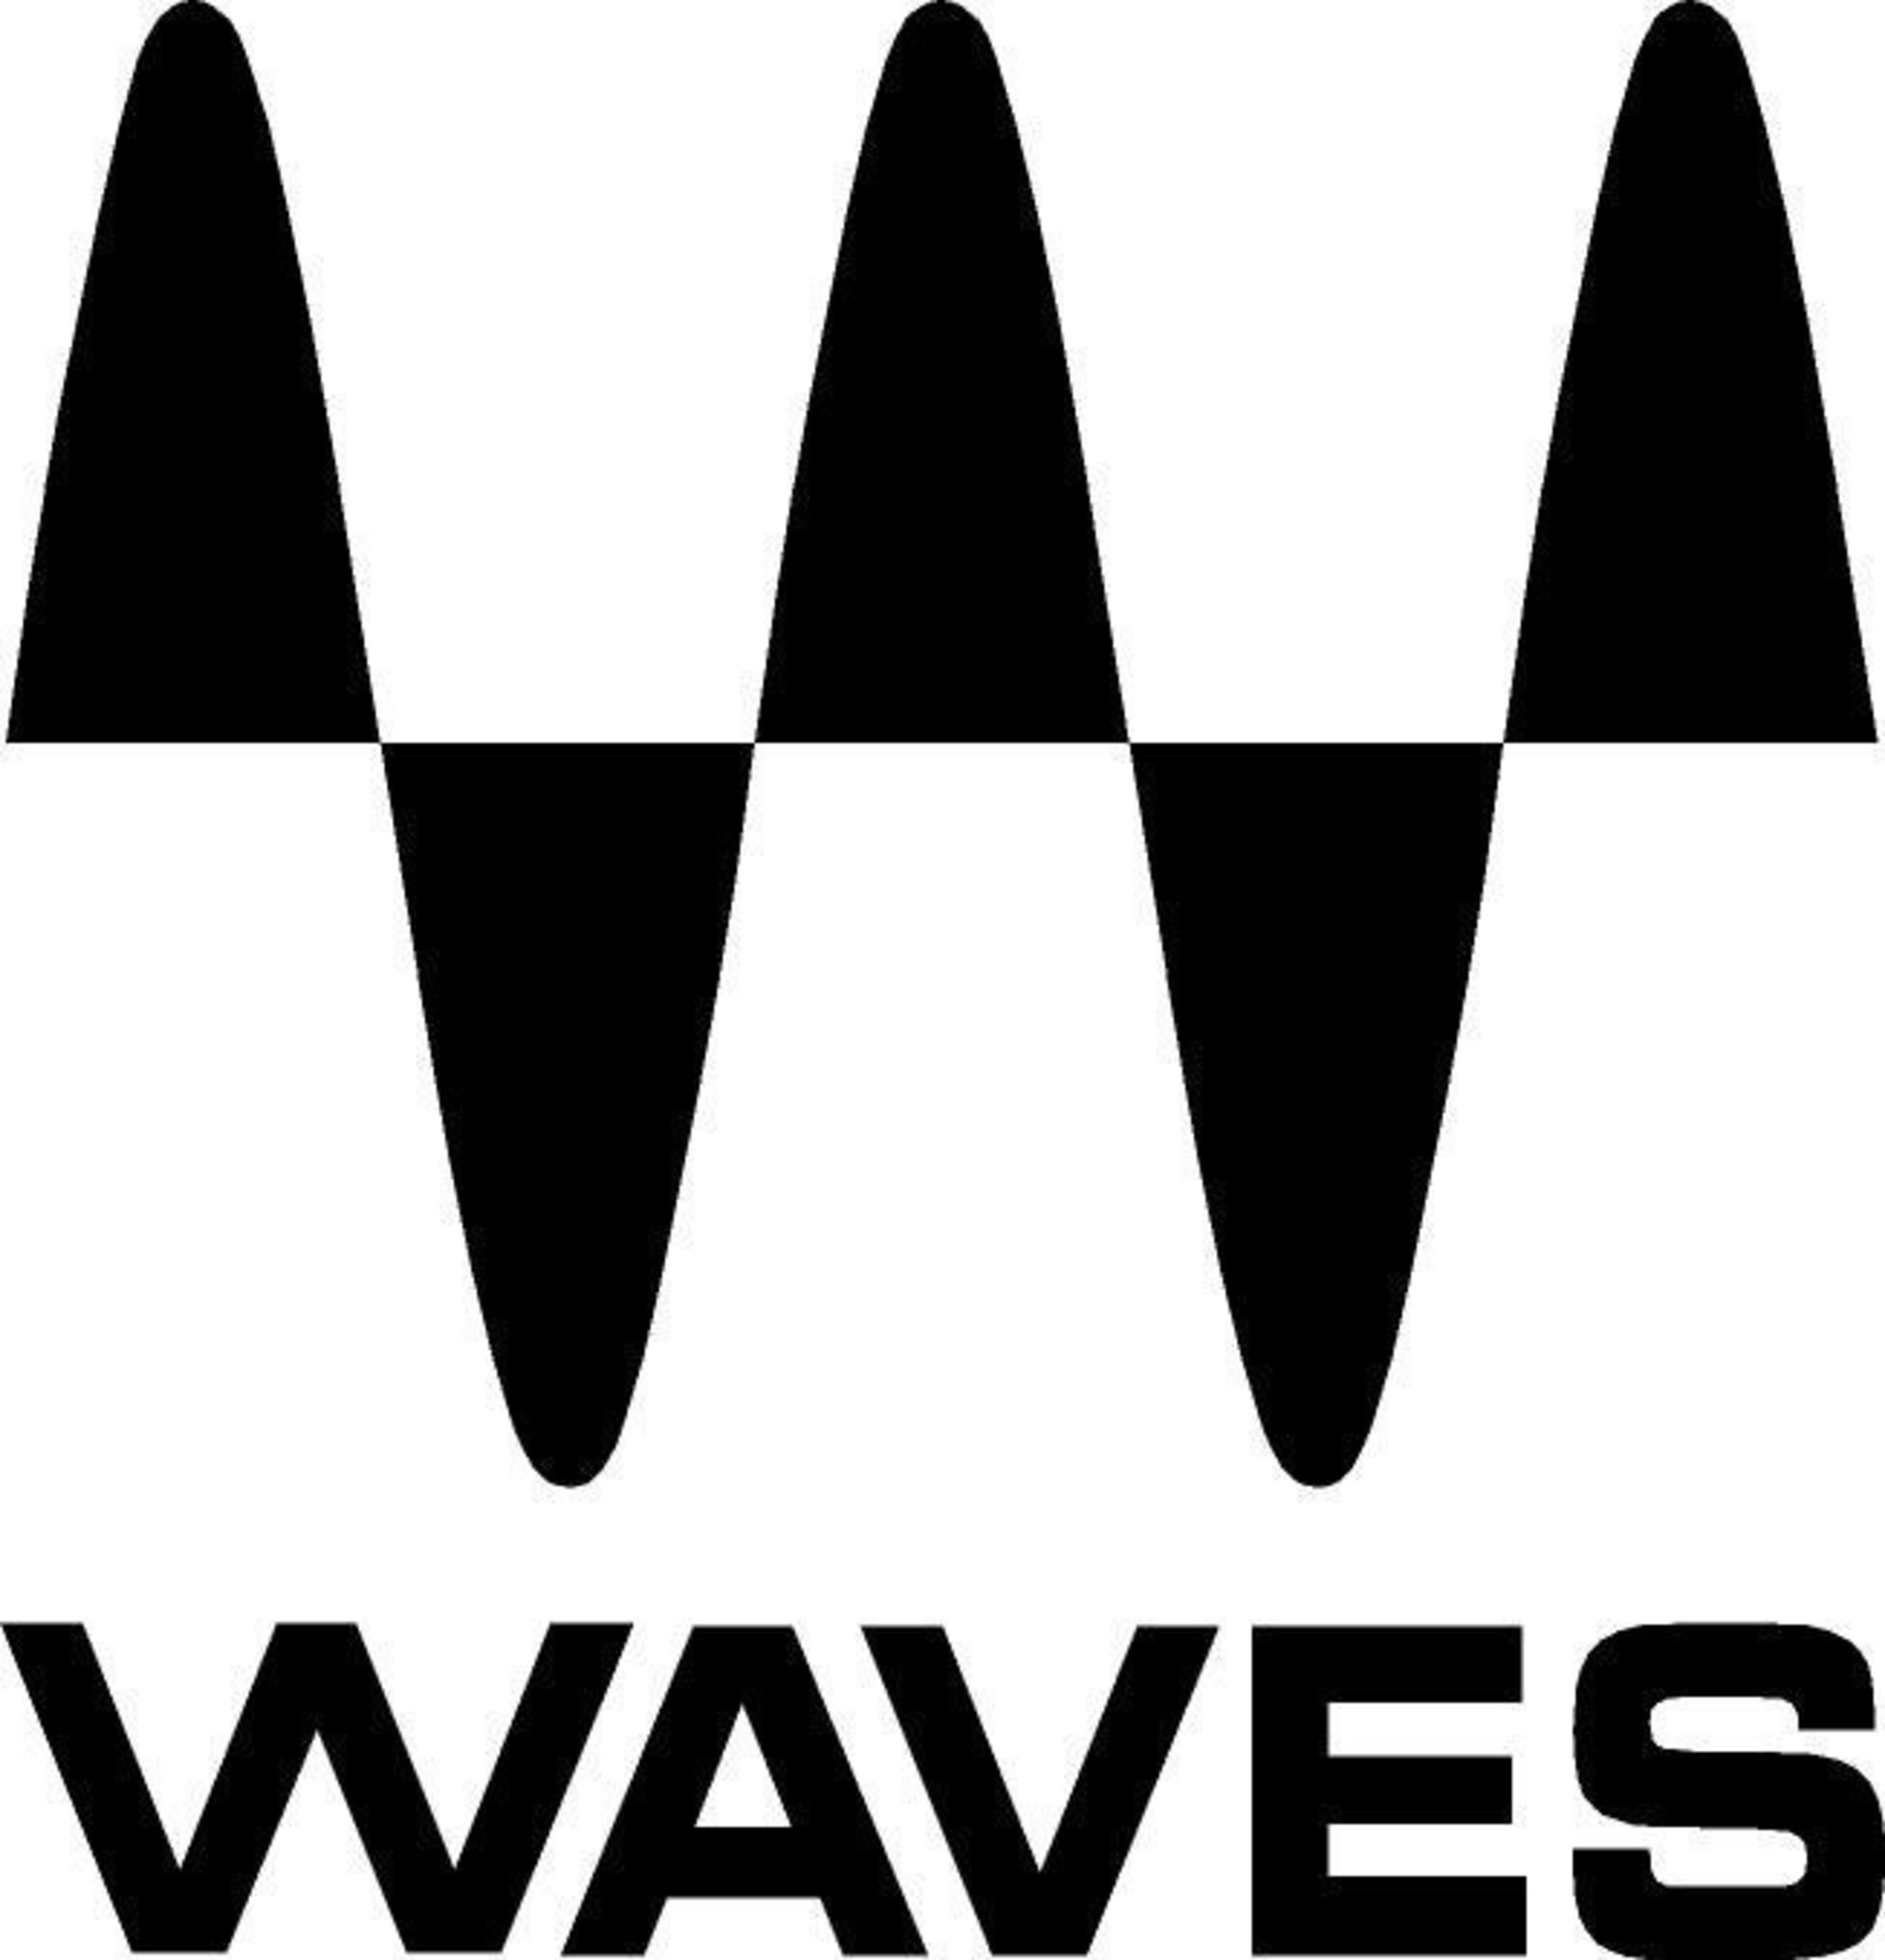 'Why Waves' at International CES 2016? Company Sets the Benchmark for Sound Throughout the Consumer Industry